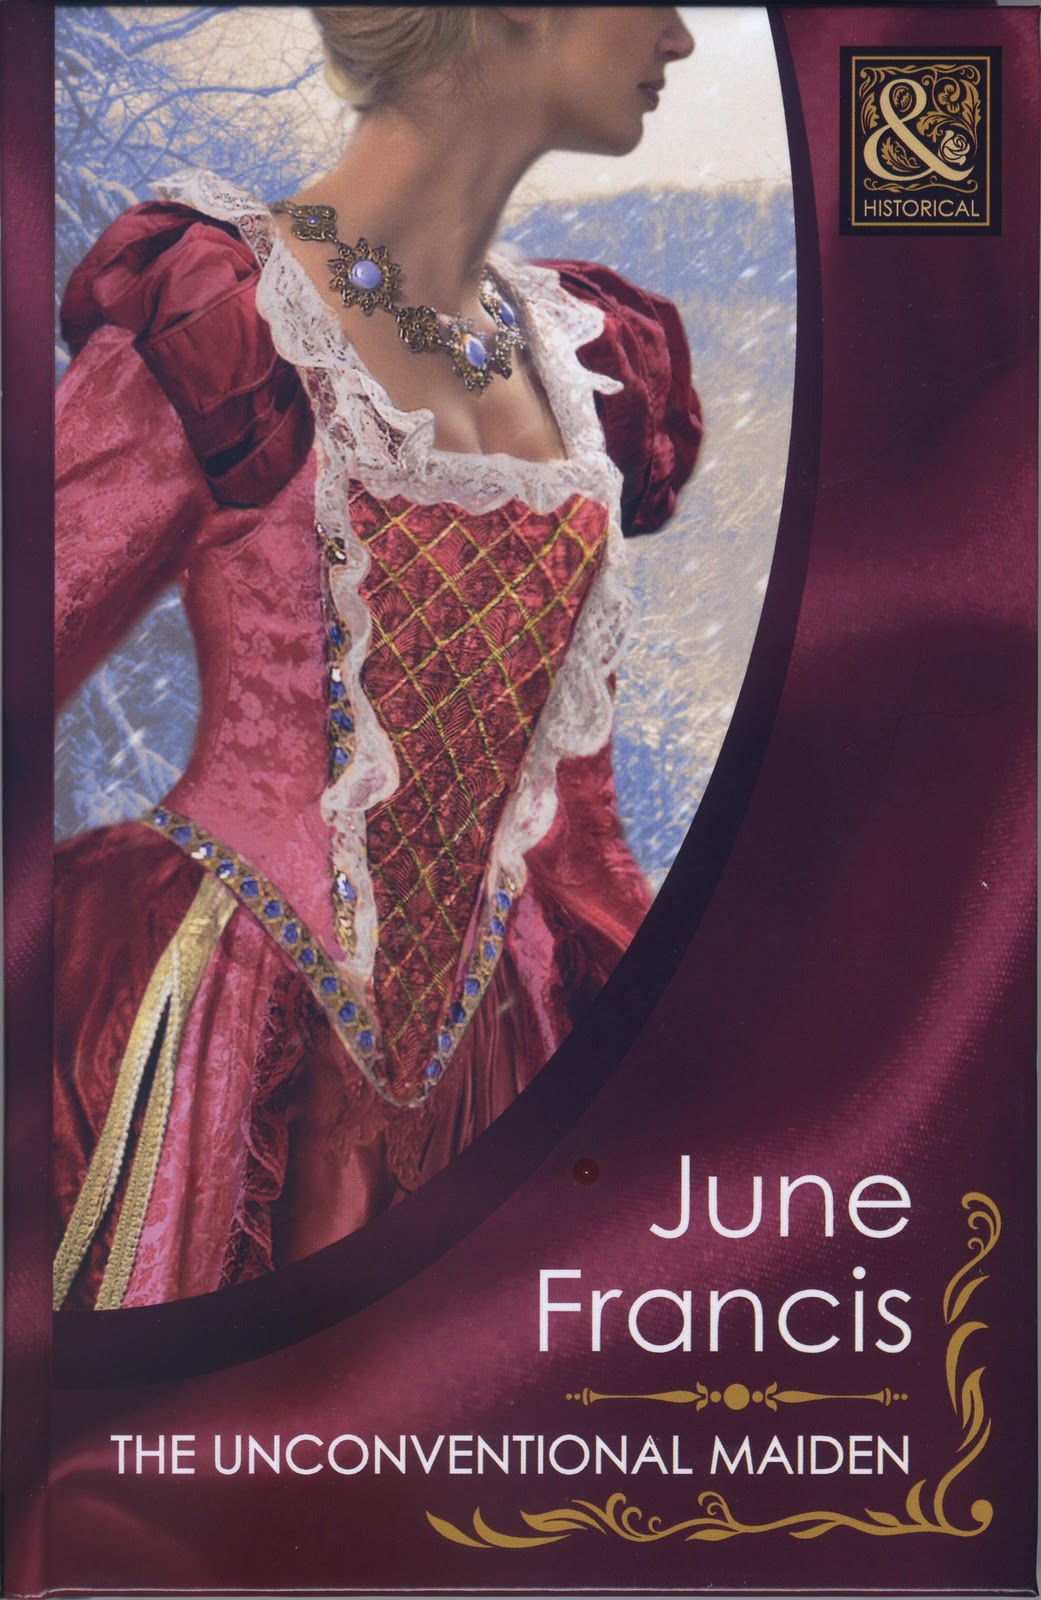 June Francis THE UNCONVENTIONAL MAIDEN Harlequin Mills & Boon . ISBN  9780263218411. Hardback £13.99